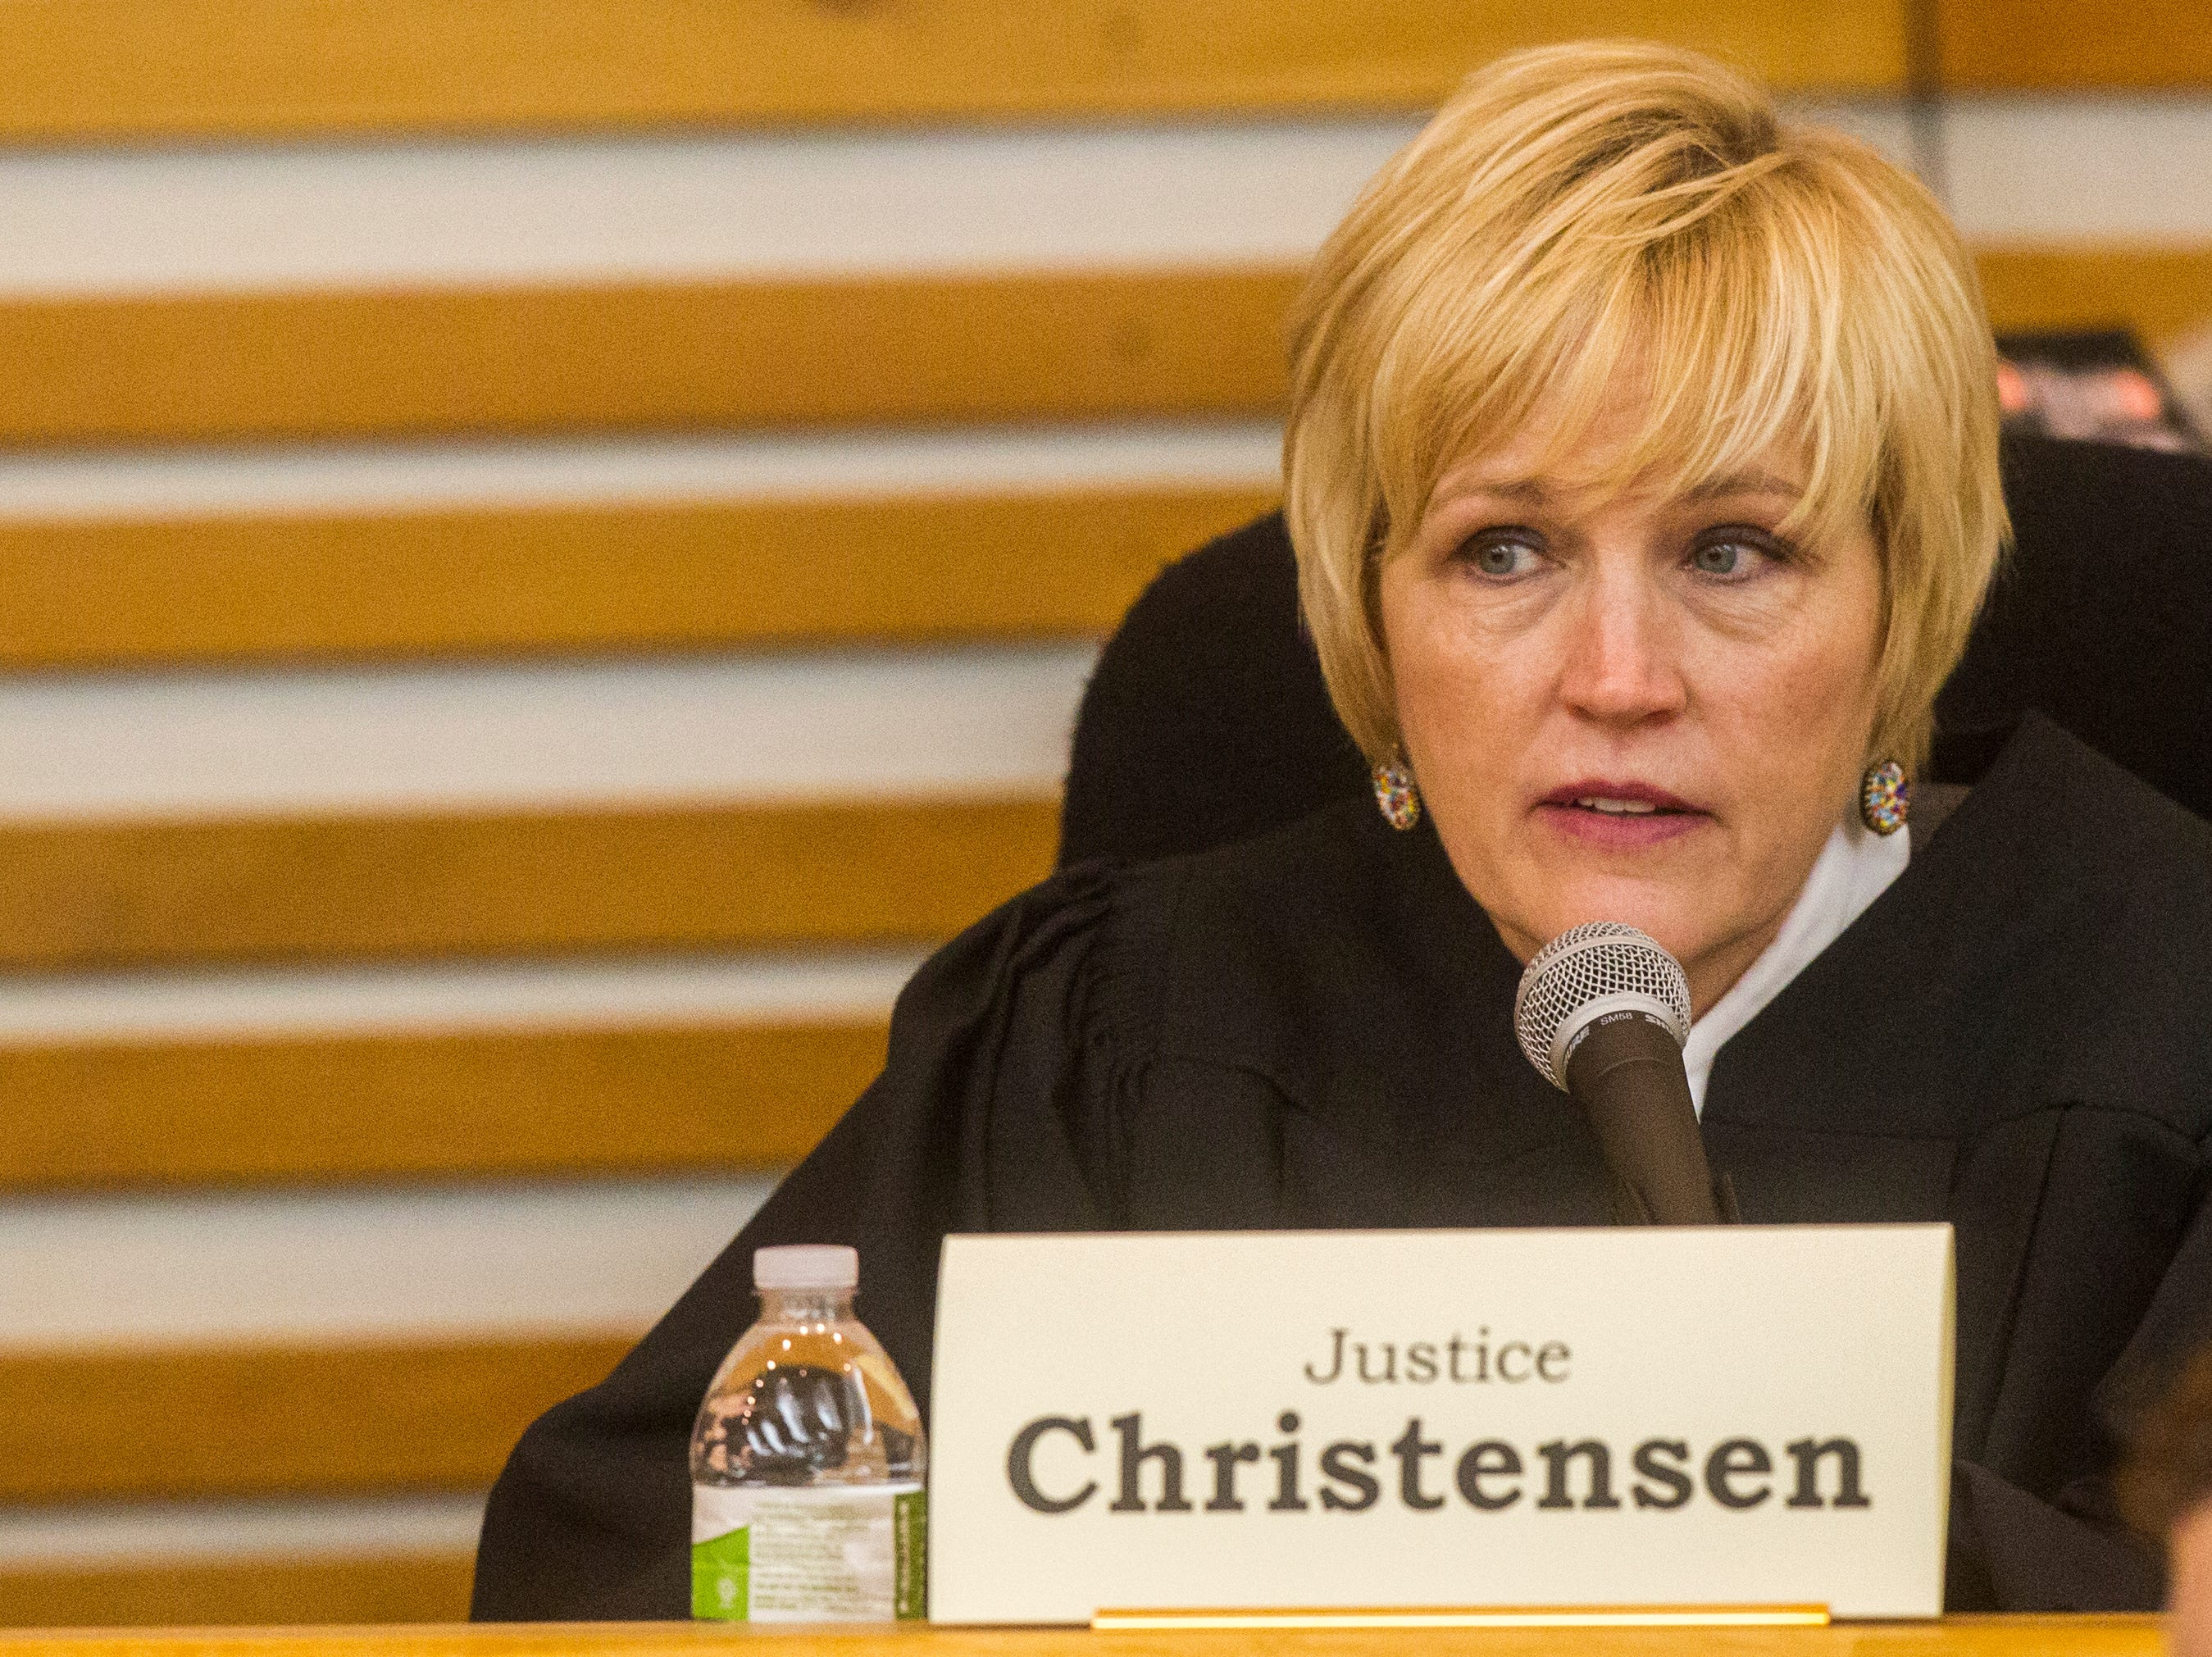 Justice Susan Christensen of the Iowa Supreme Court speaks while oral arguments are presented on Friday, Sept. 7, 2018, at Levitt Auditorium inside the Boyd Law Building on the University of Iowa campus in Iowa City.